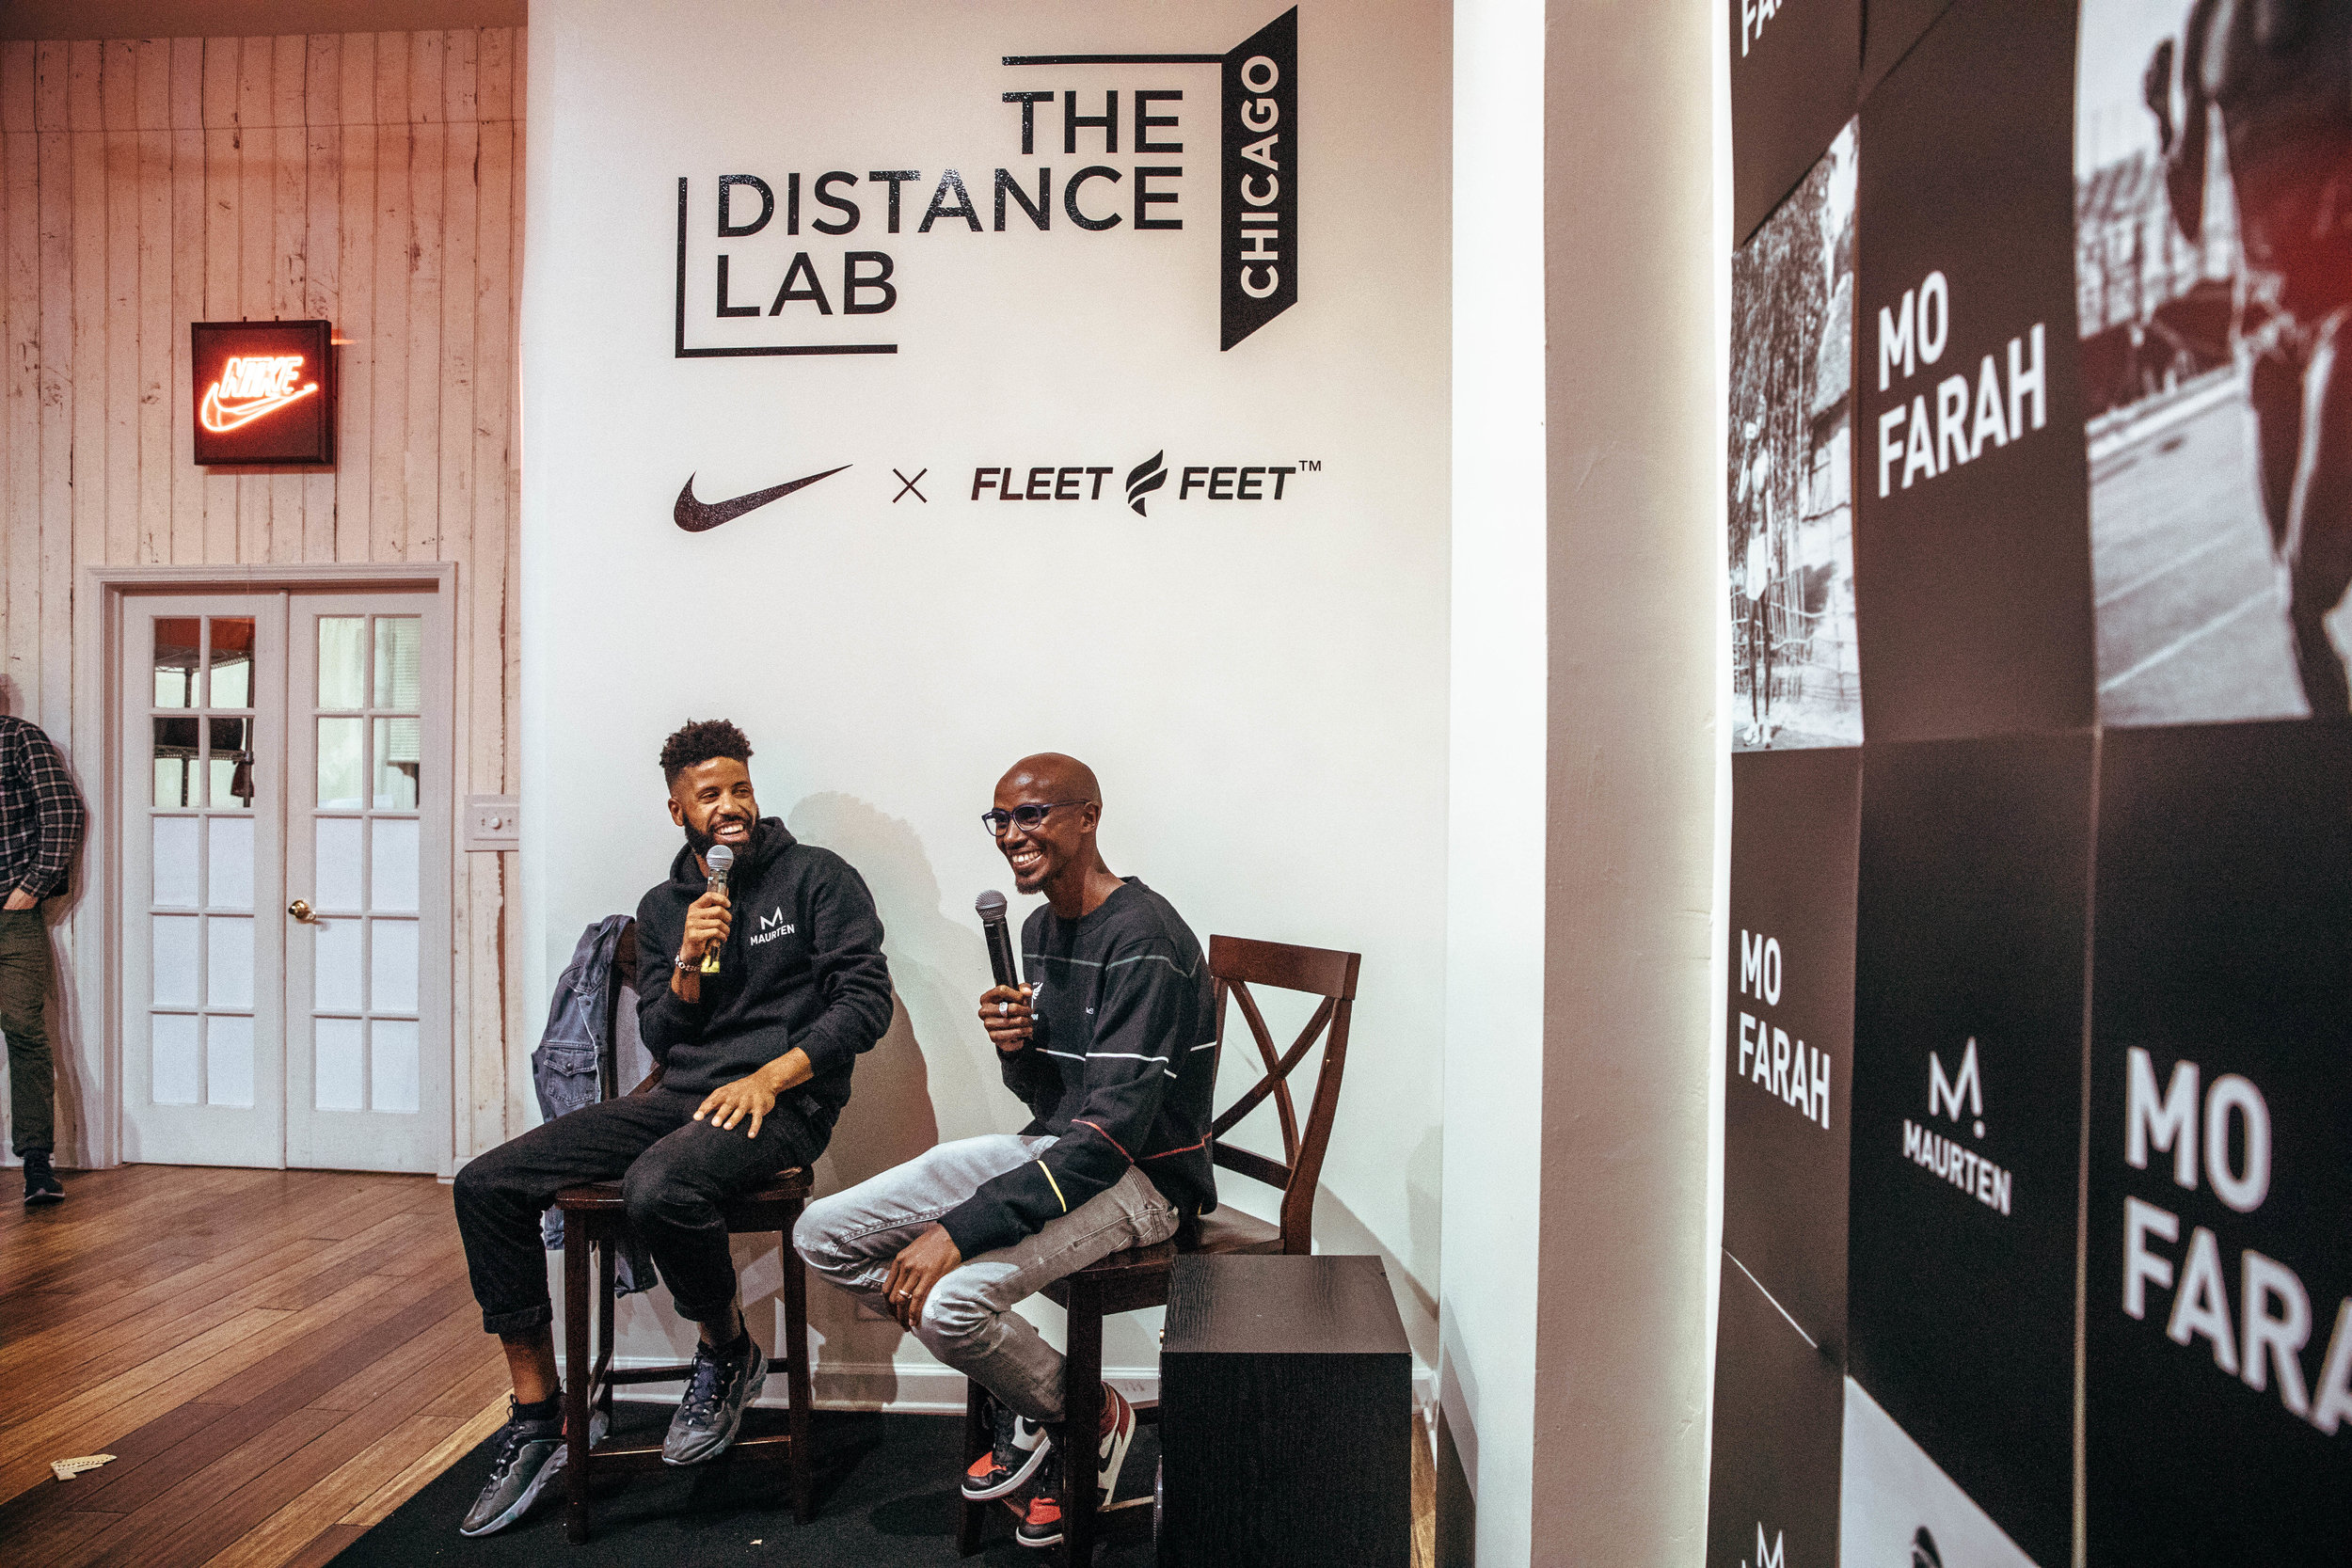 Q&A with Mo Farah and Knox Robinson. - Curating unique experiences in a retail space allowed us to build new customers and re-engage old customers.